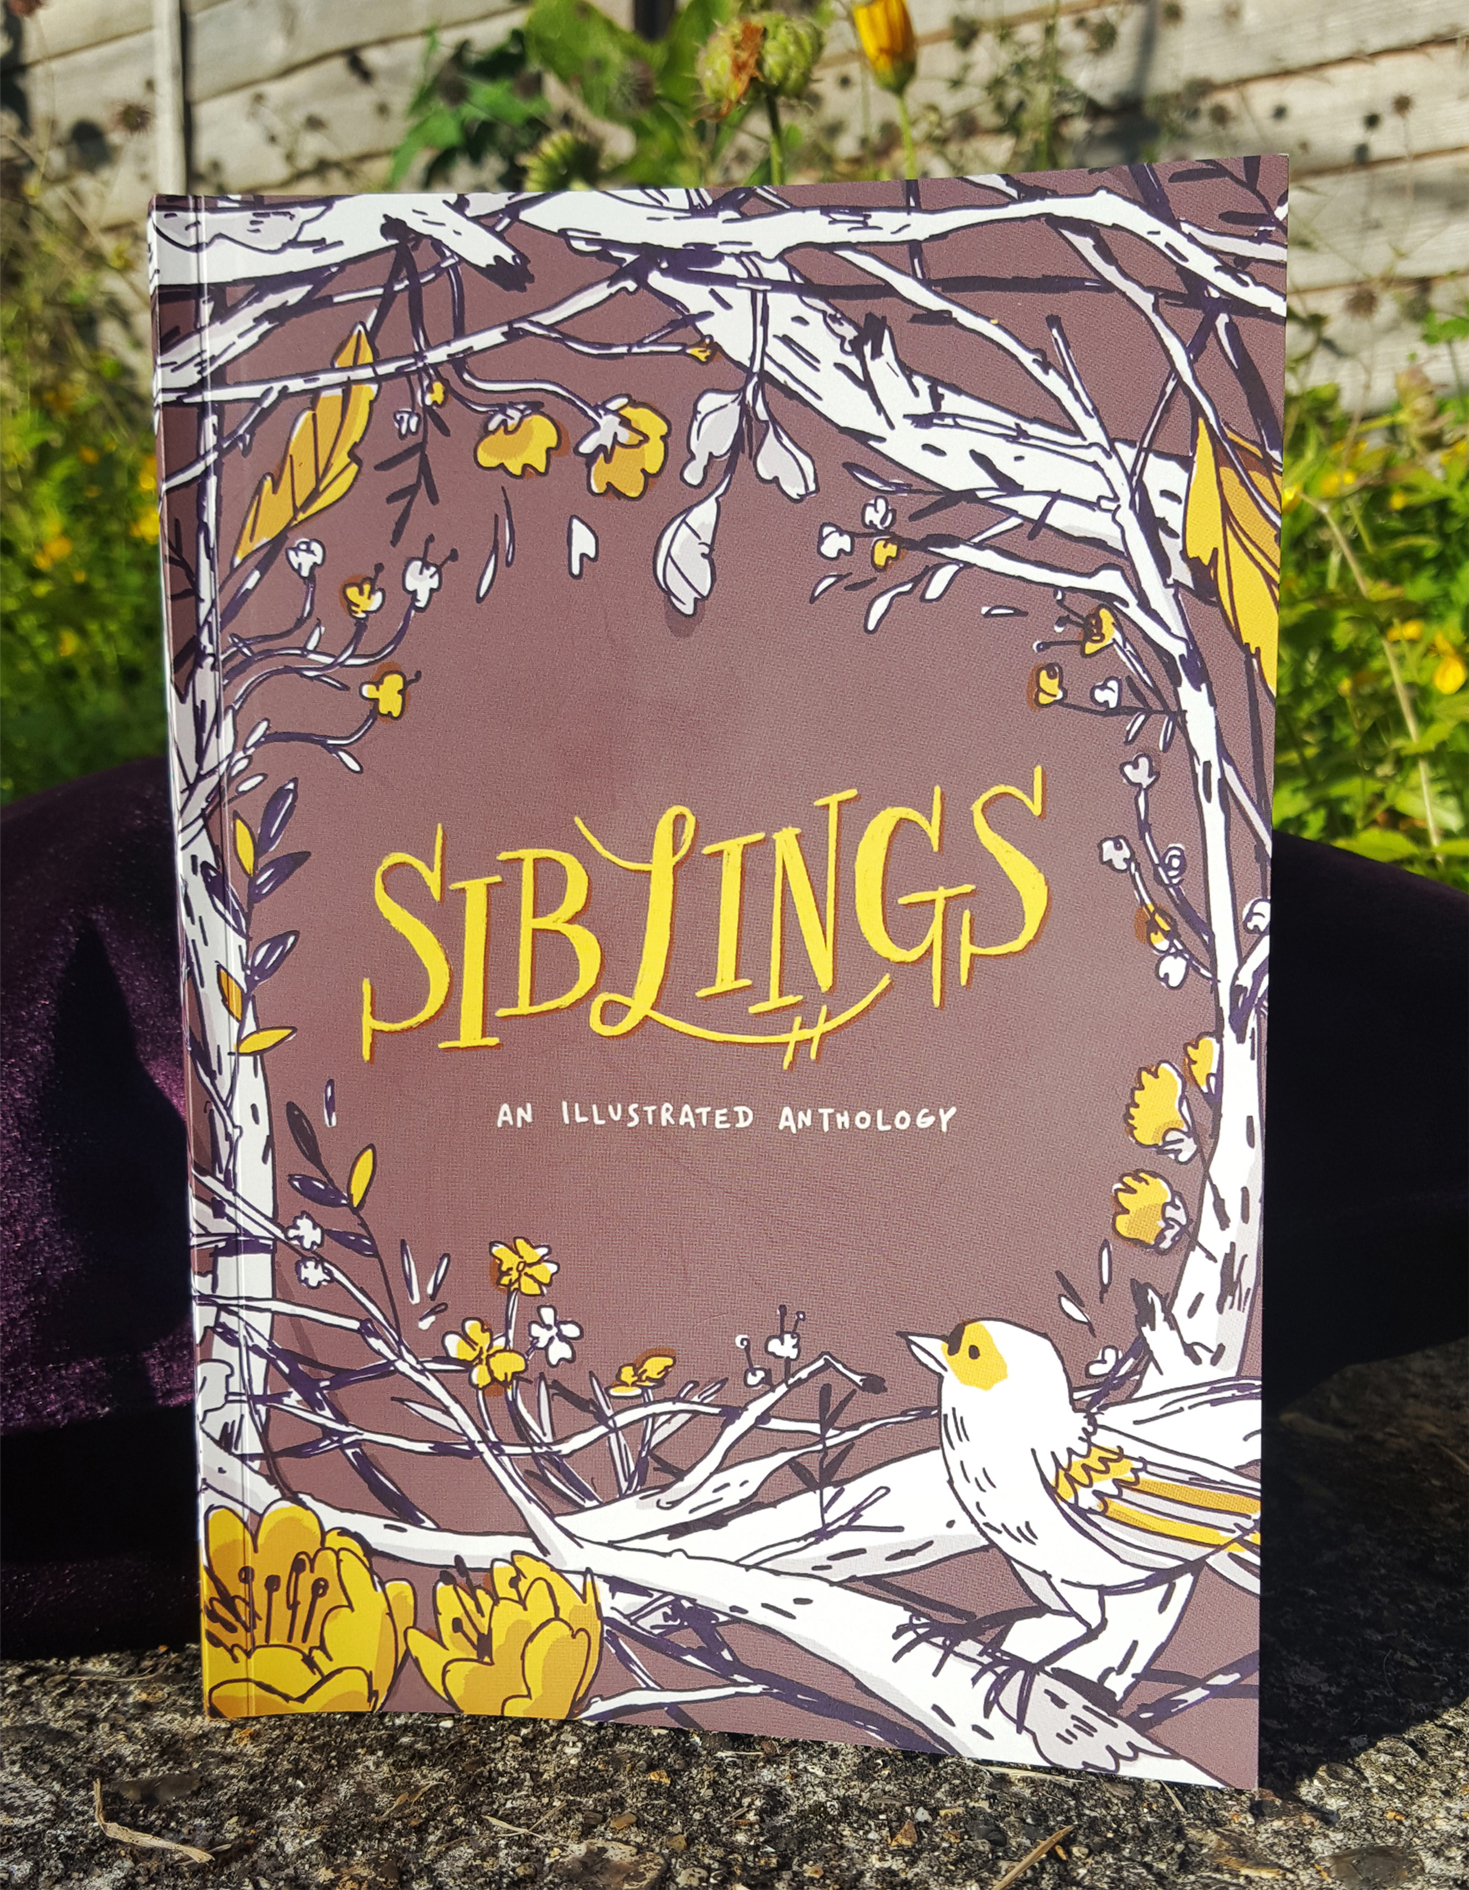 PDF - Siblings: An Illustrated Anthology Vol. 1